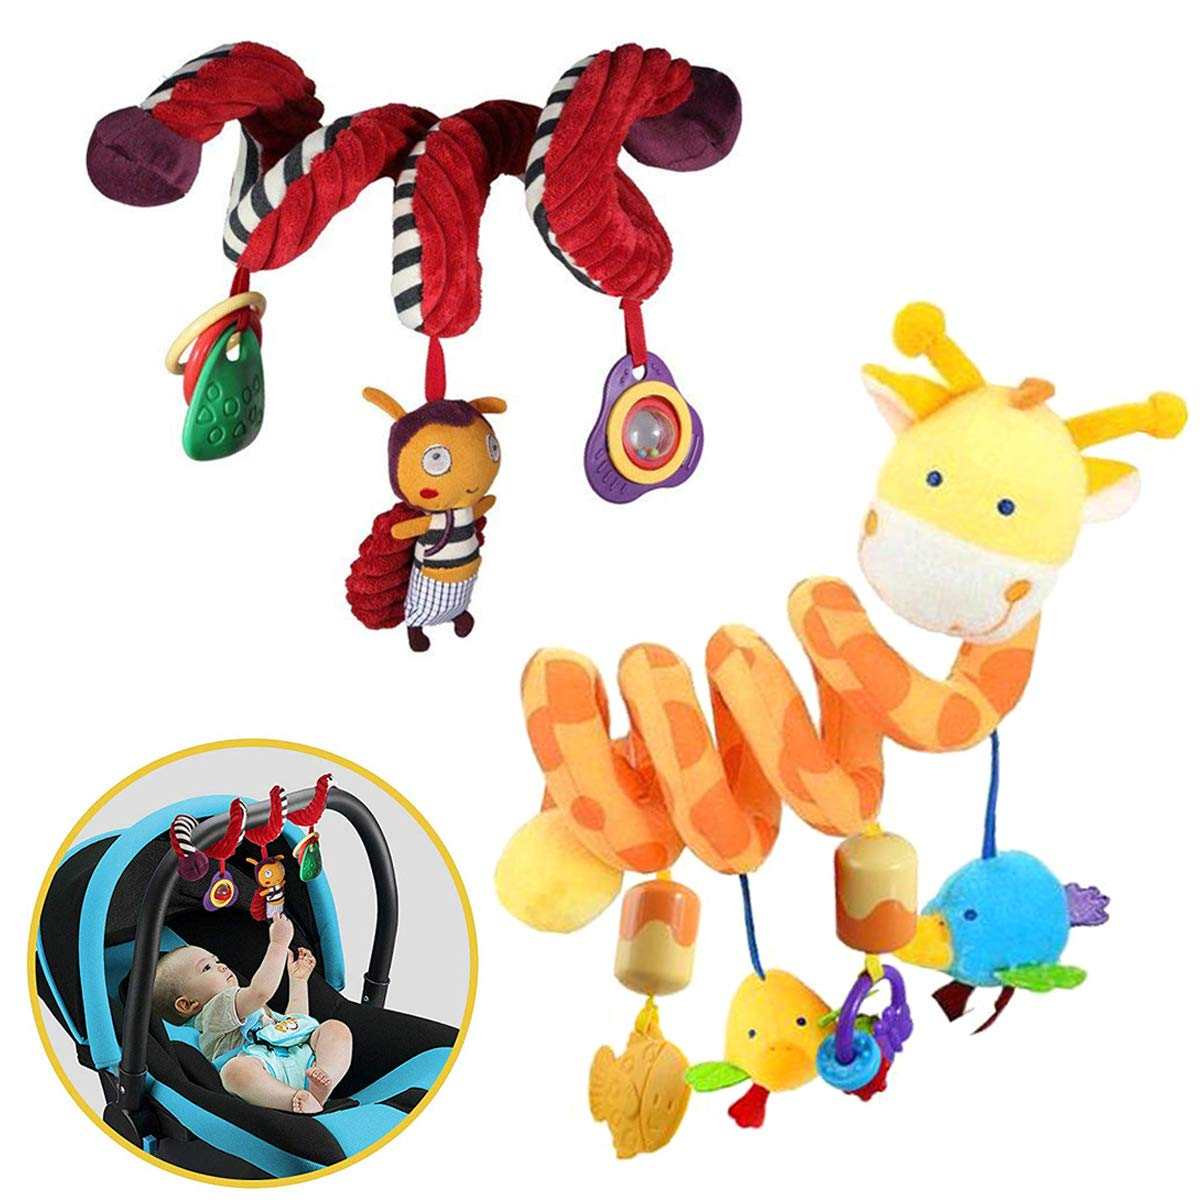 2 Pack Spiral Activity Toy, Activity Spiral Plush Toys Stroller, Travel Activity Toy (Giraffe & Bee Shape) by Fstop Labs